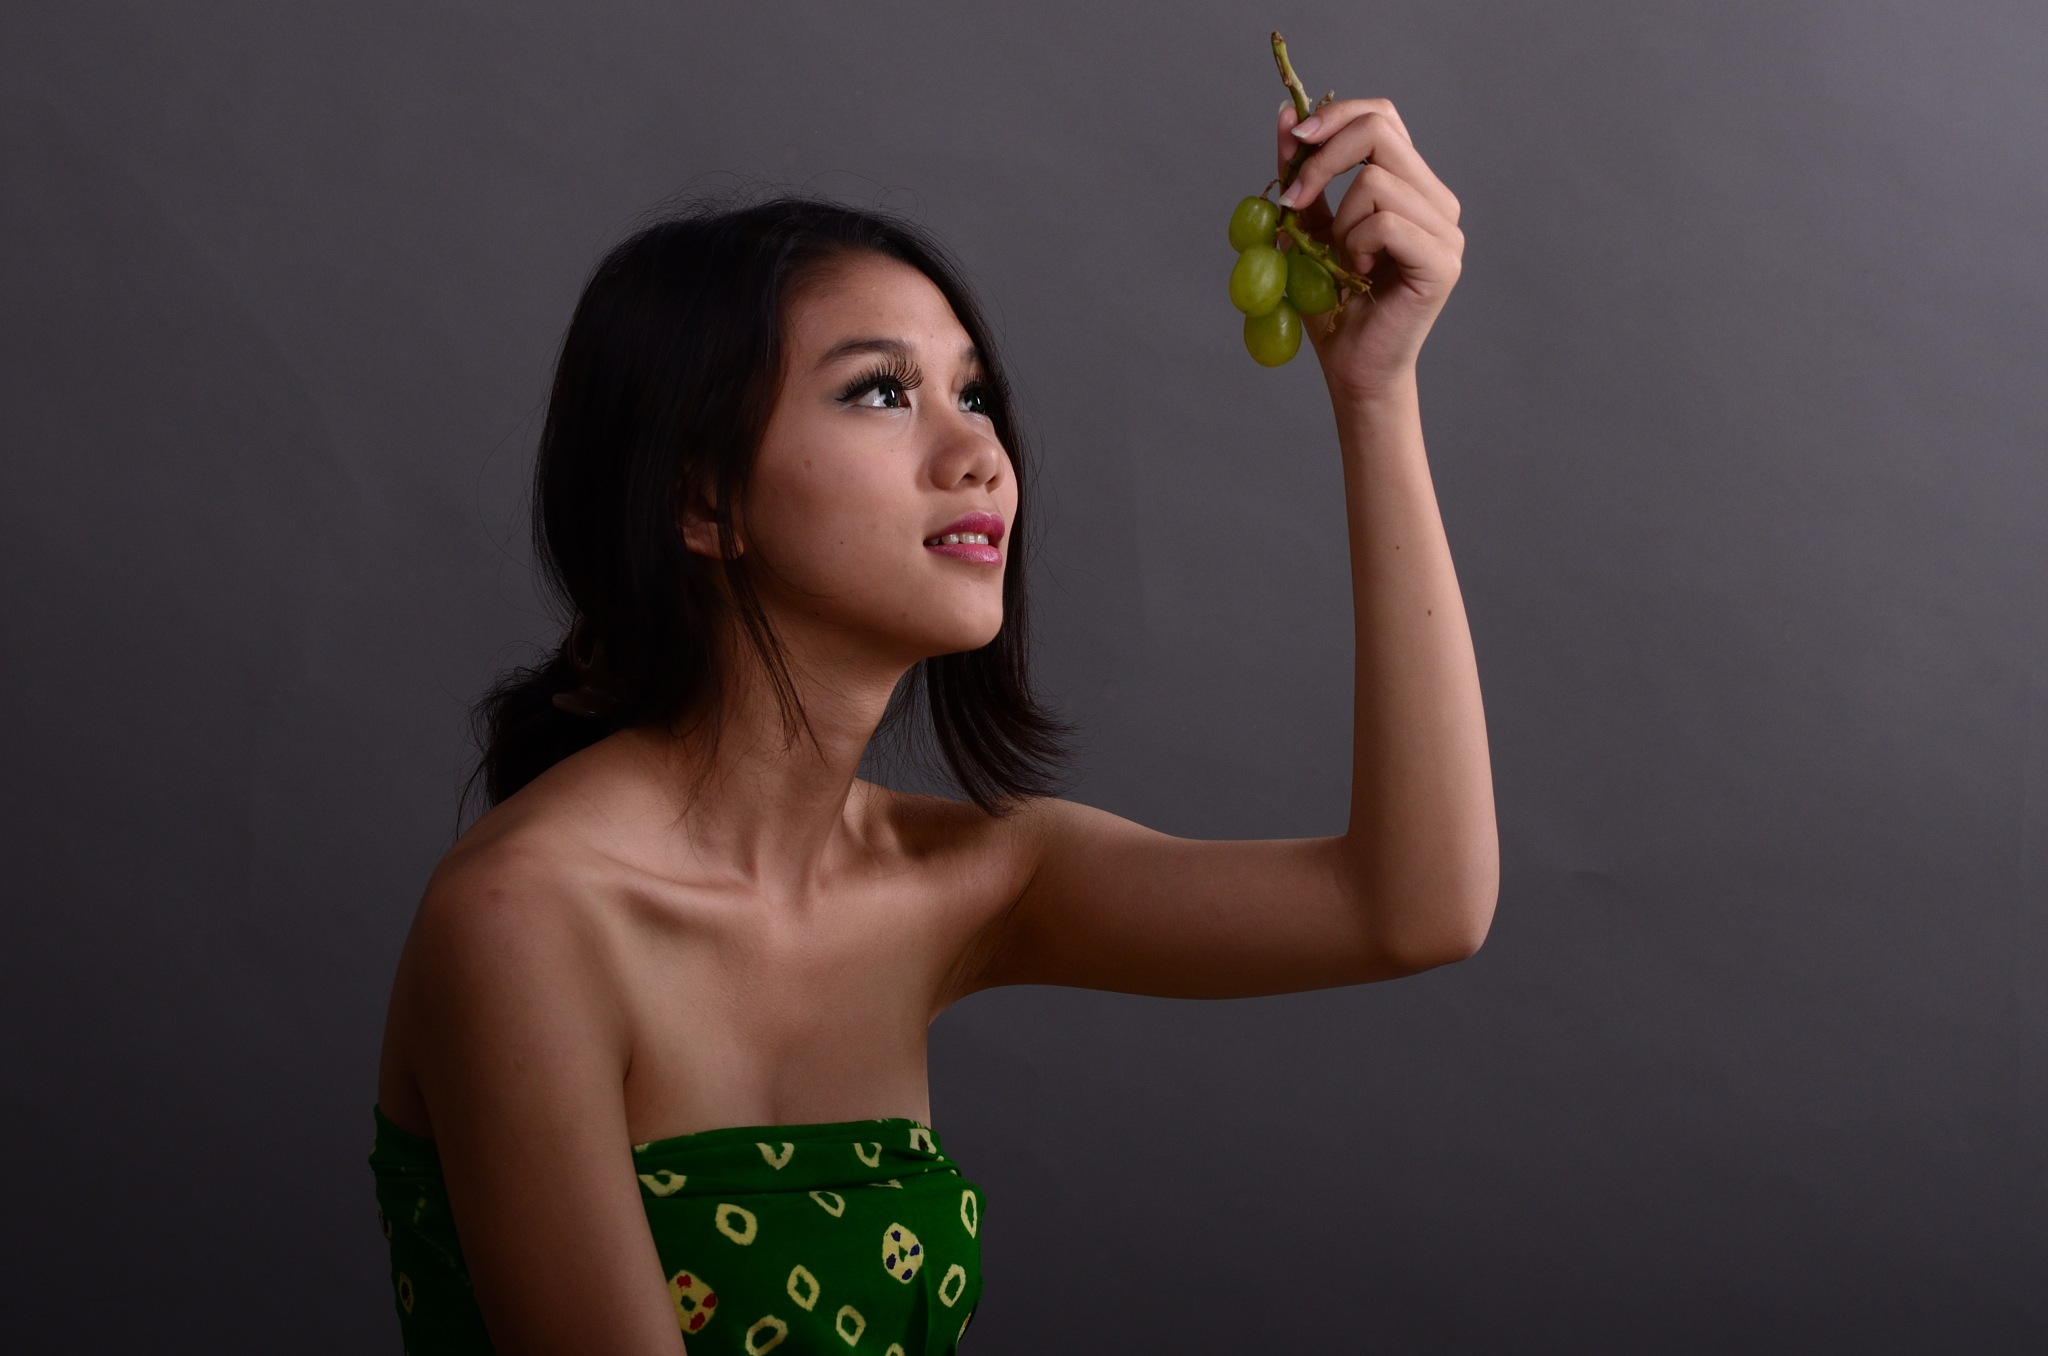 Is This Green Grapes? by Yulius